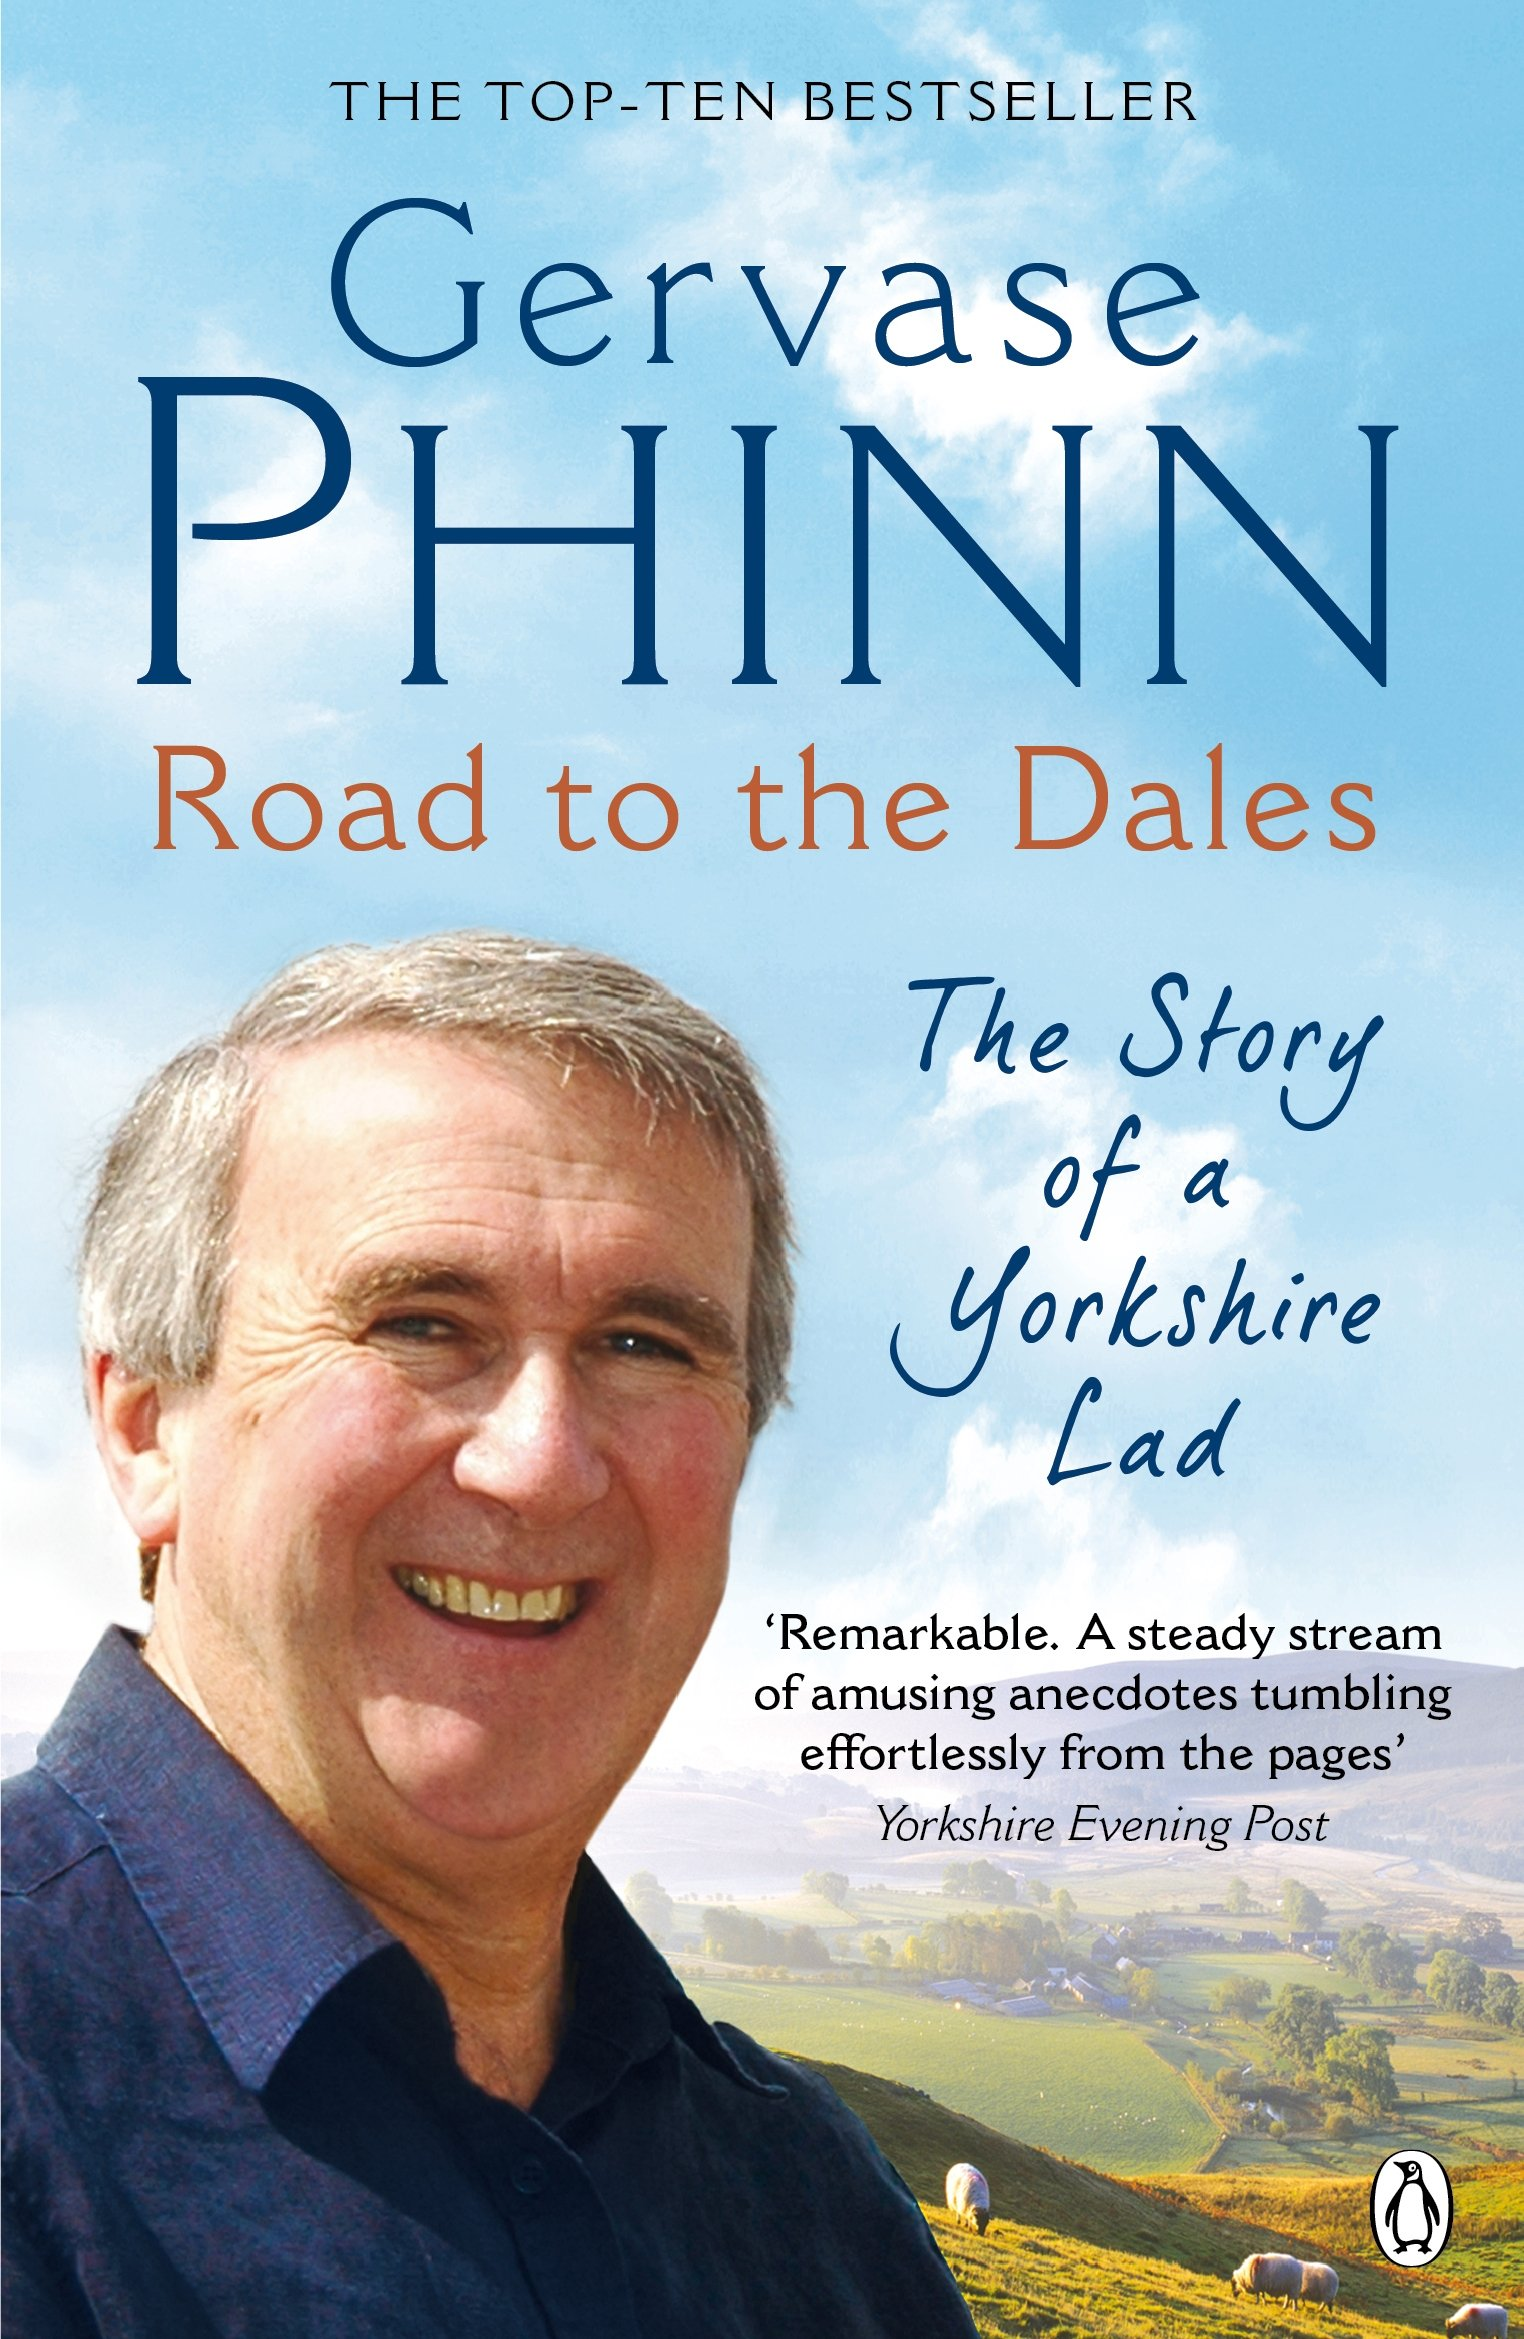 Road To The Dales: The Story Of A Yorkshire Lad by Gervase Phinn (Penguin, £7.99)